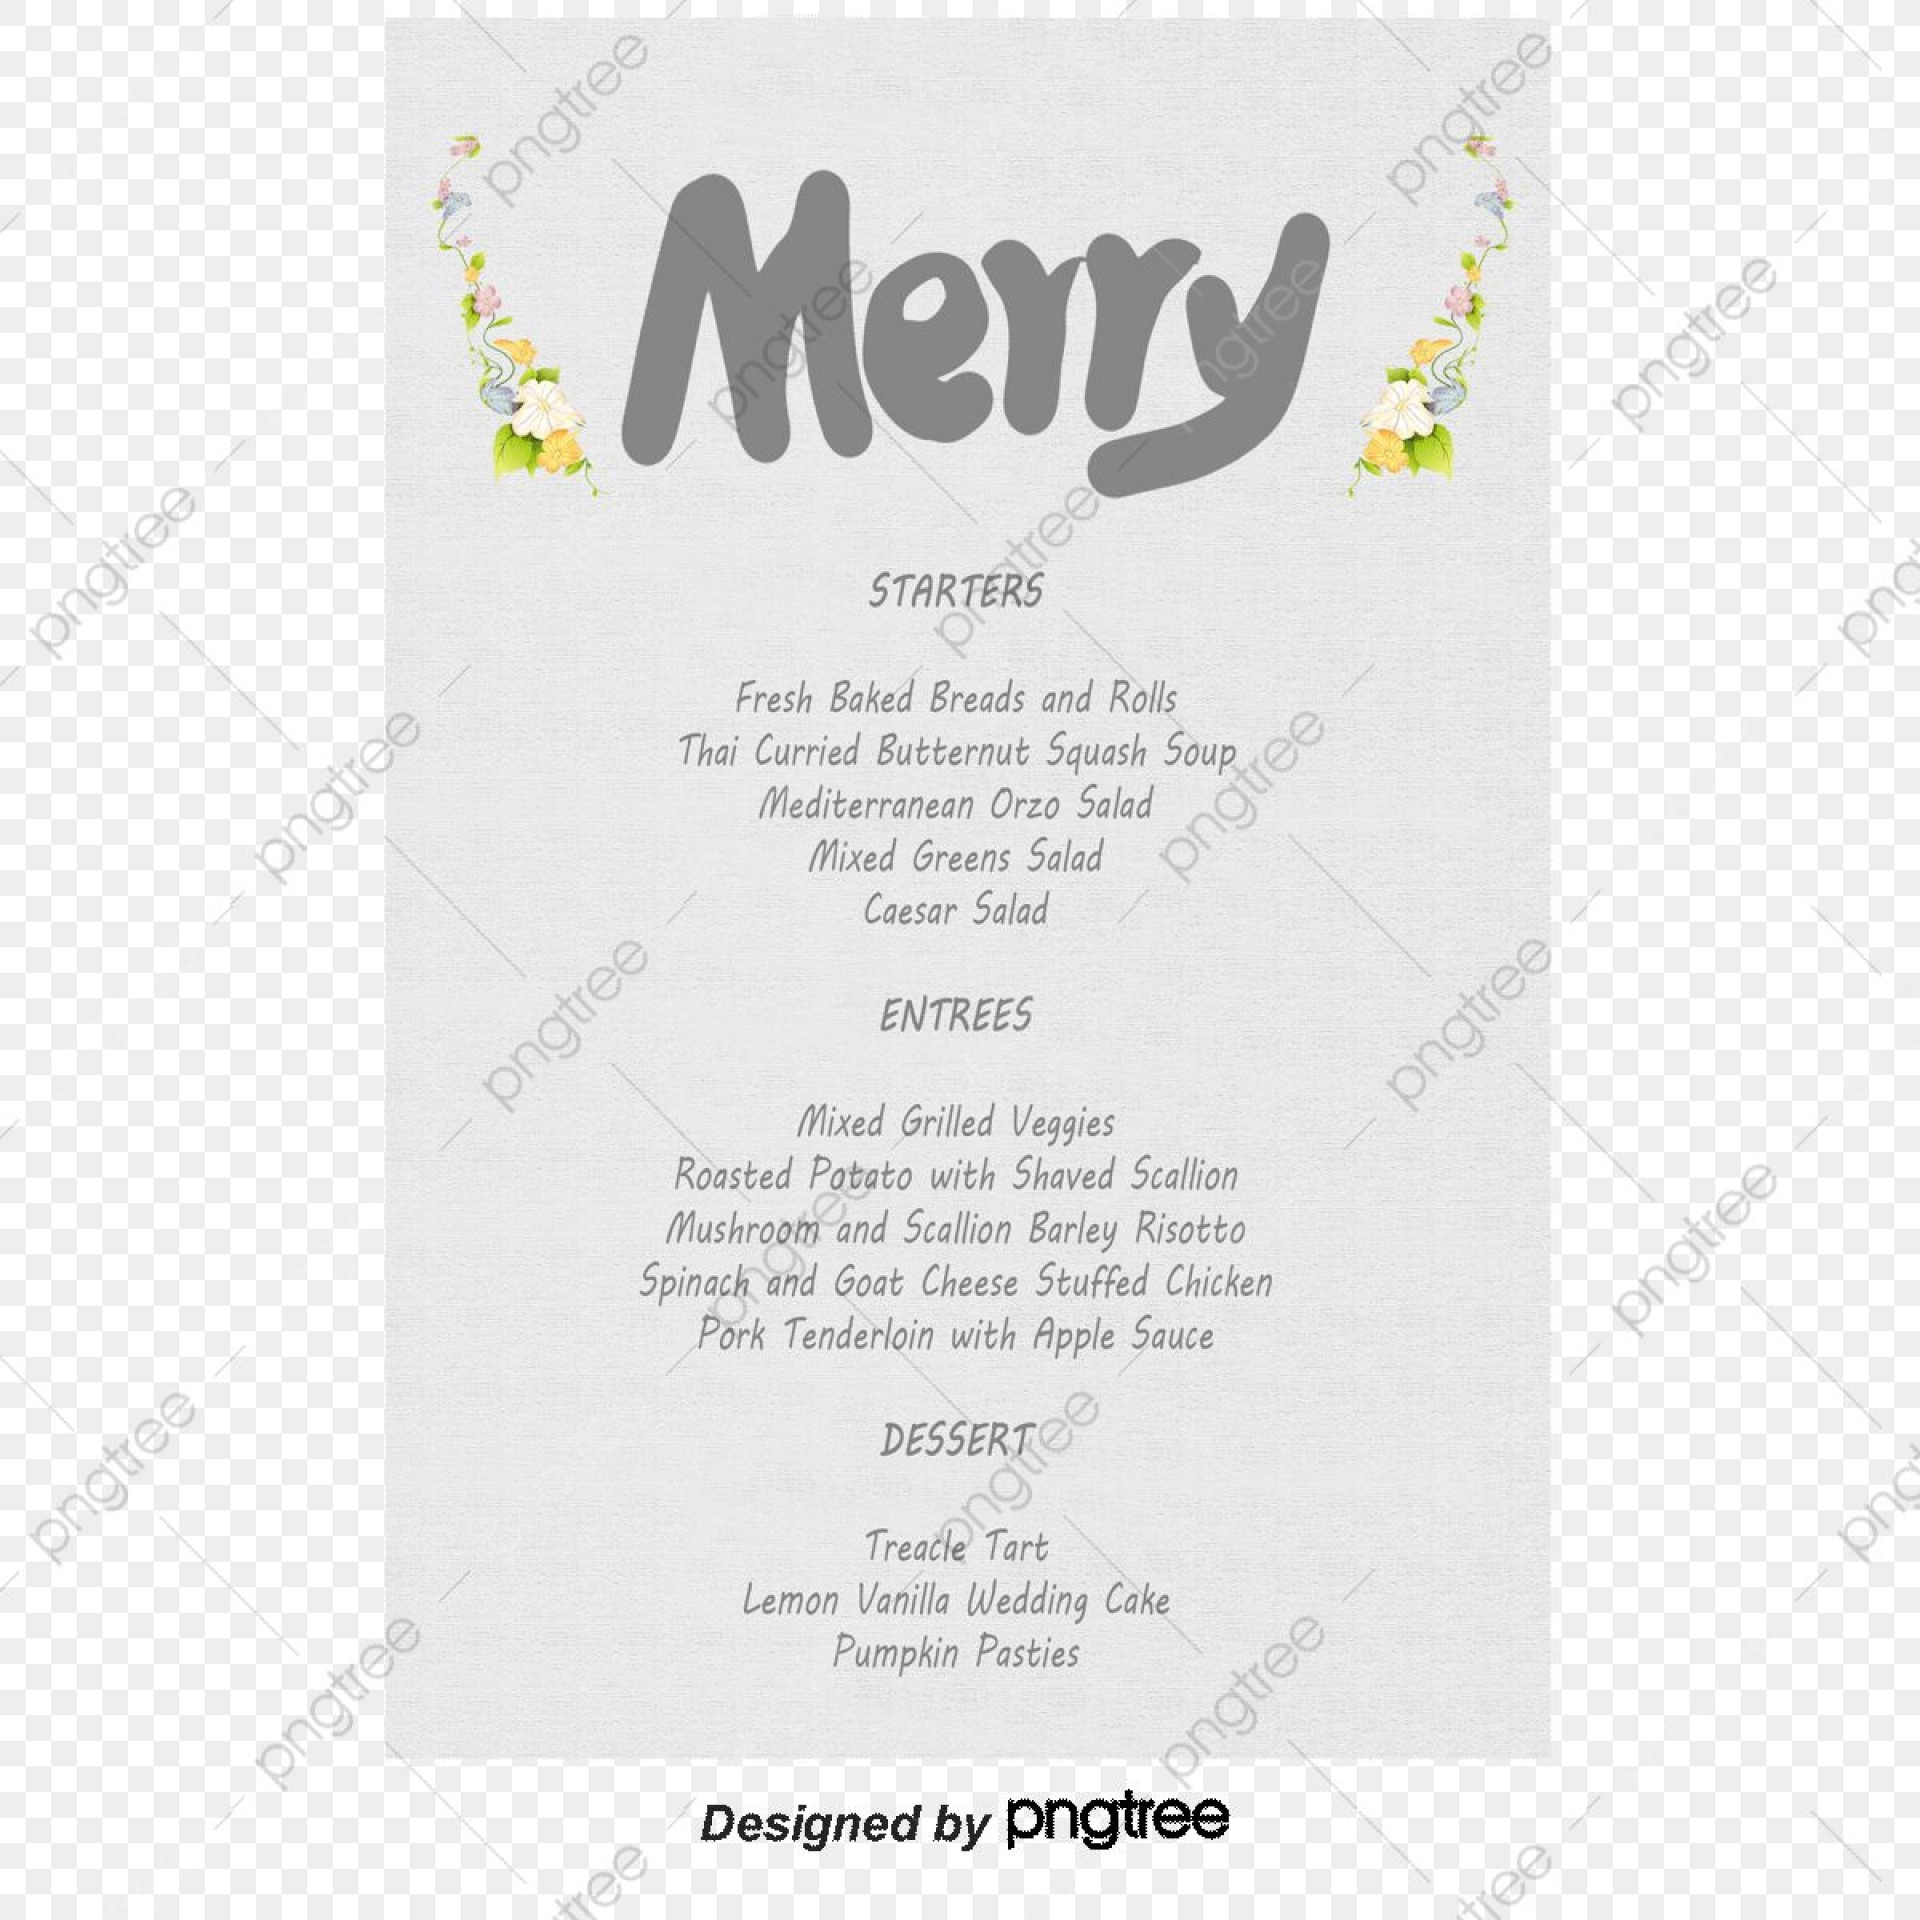 009 Exceptional Free Wedding Menu Template High Definition  Templates Printable For Mac1920